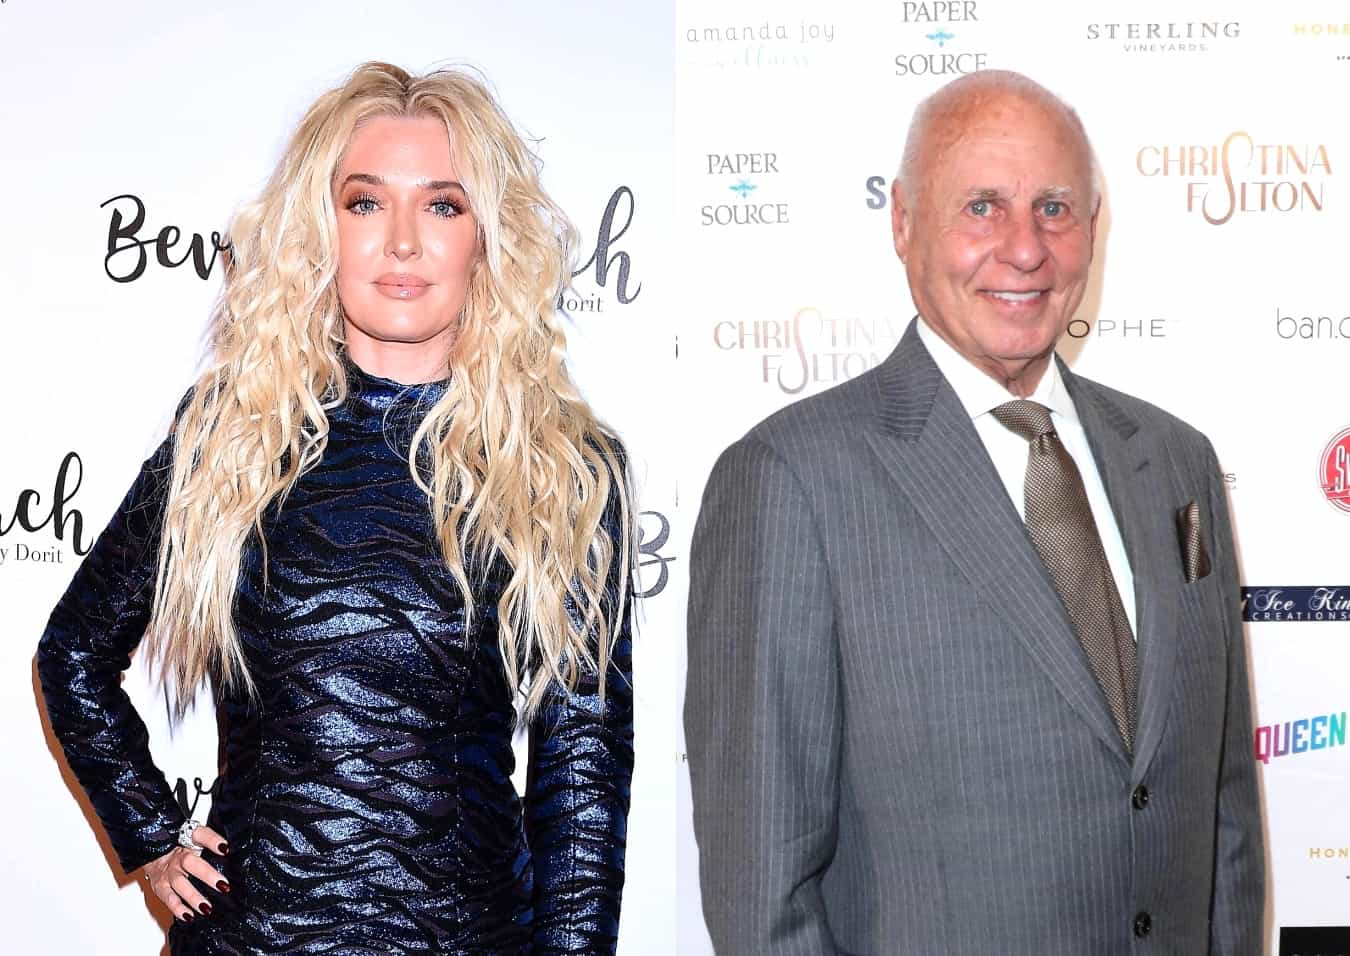 RHOBH Star Erika Jayne Accused of Sham Divorce and Embezzling Money in New Lawsuit Filed Against Her and Husband Thomas Girardi